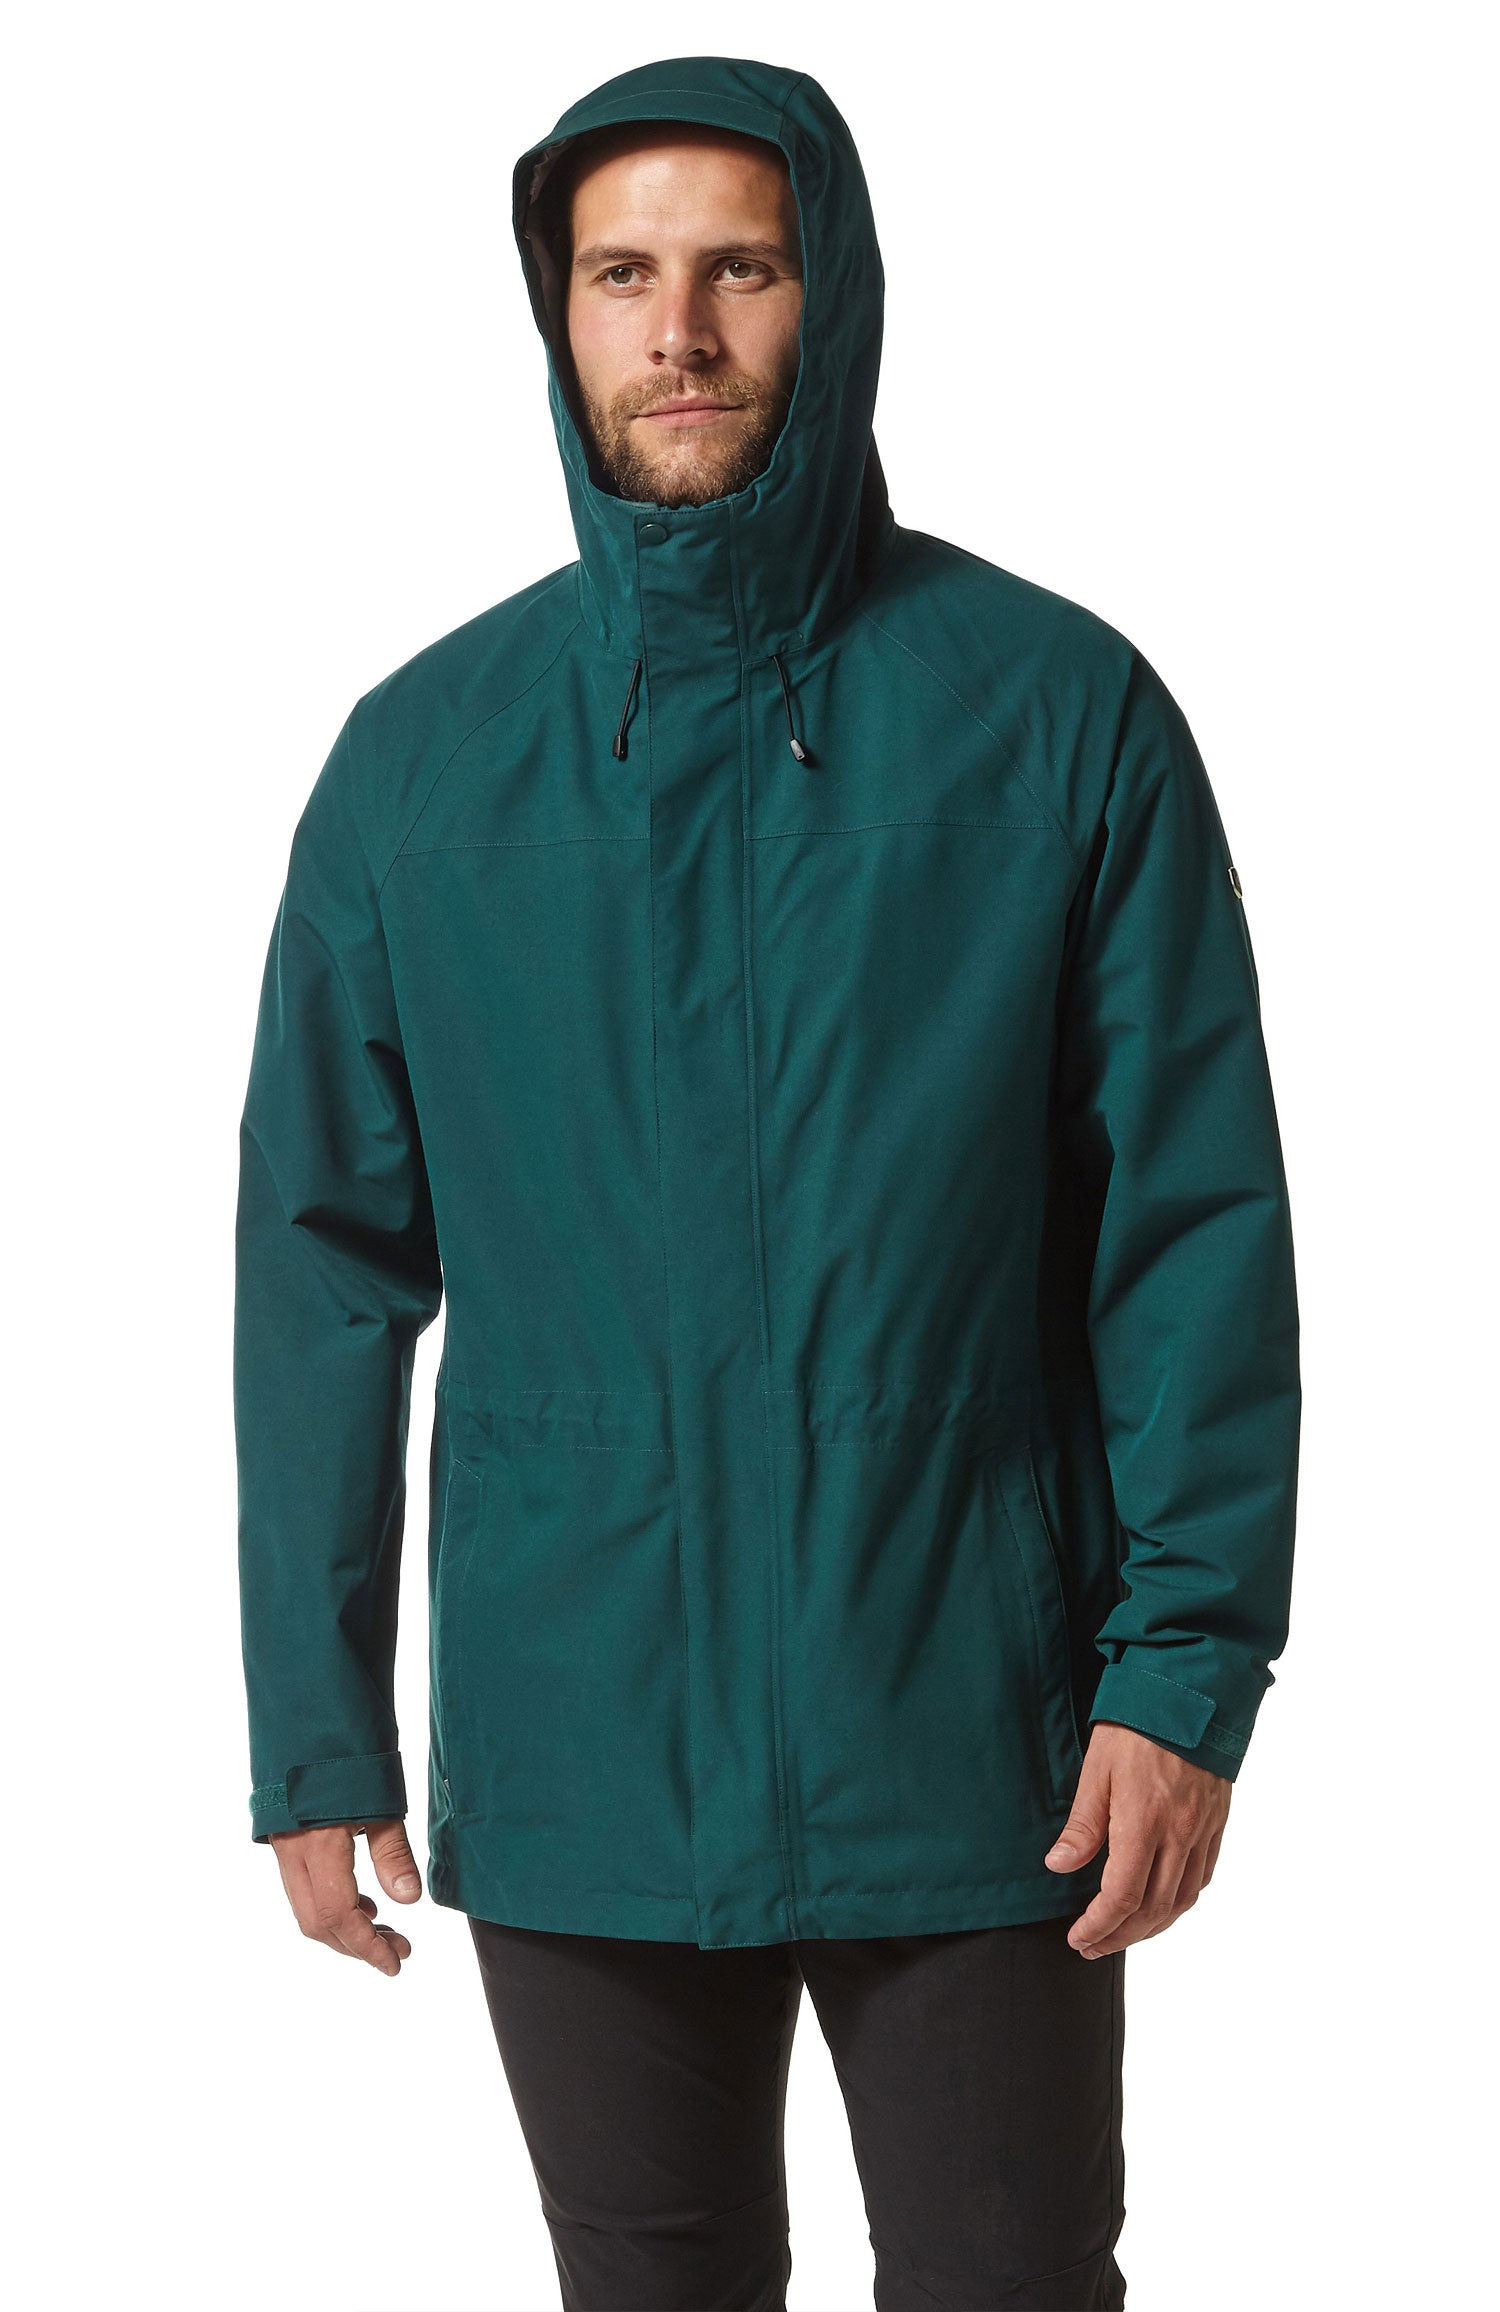 Corran Gore-Tex Waterproof Jacket by Craghoppers